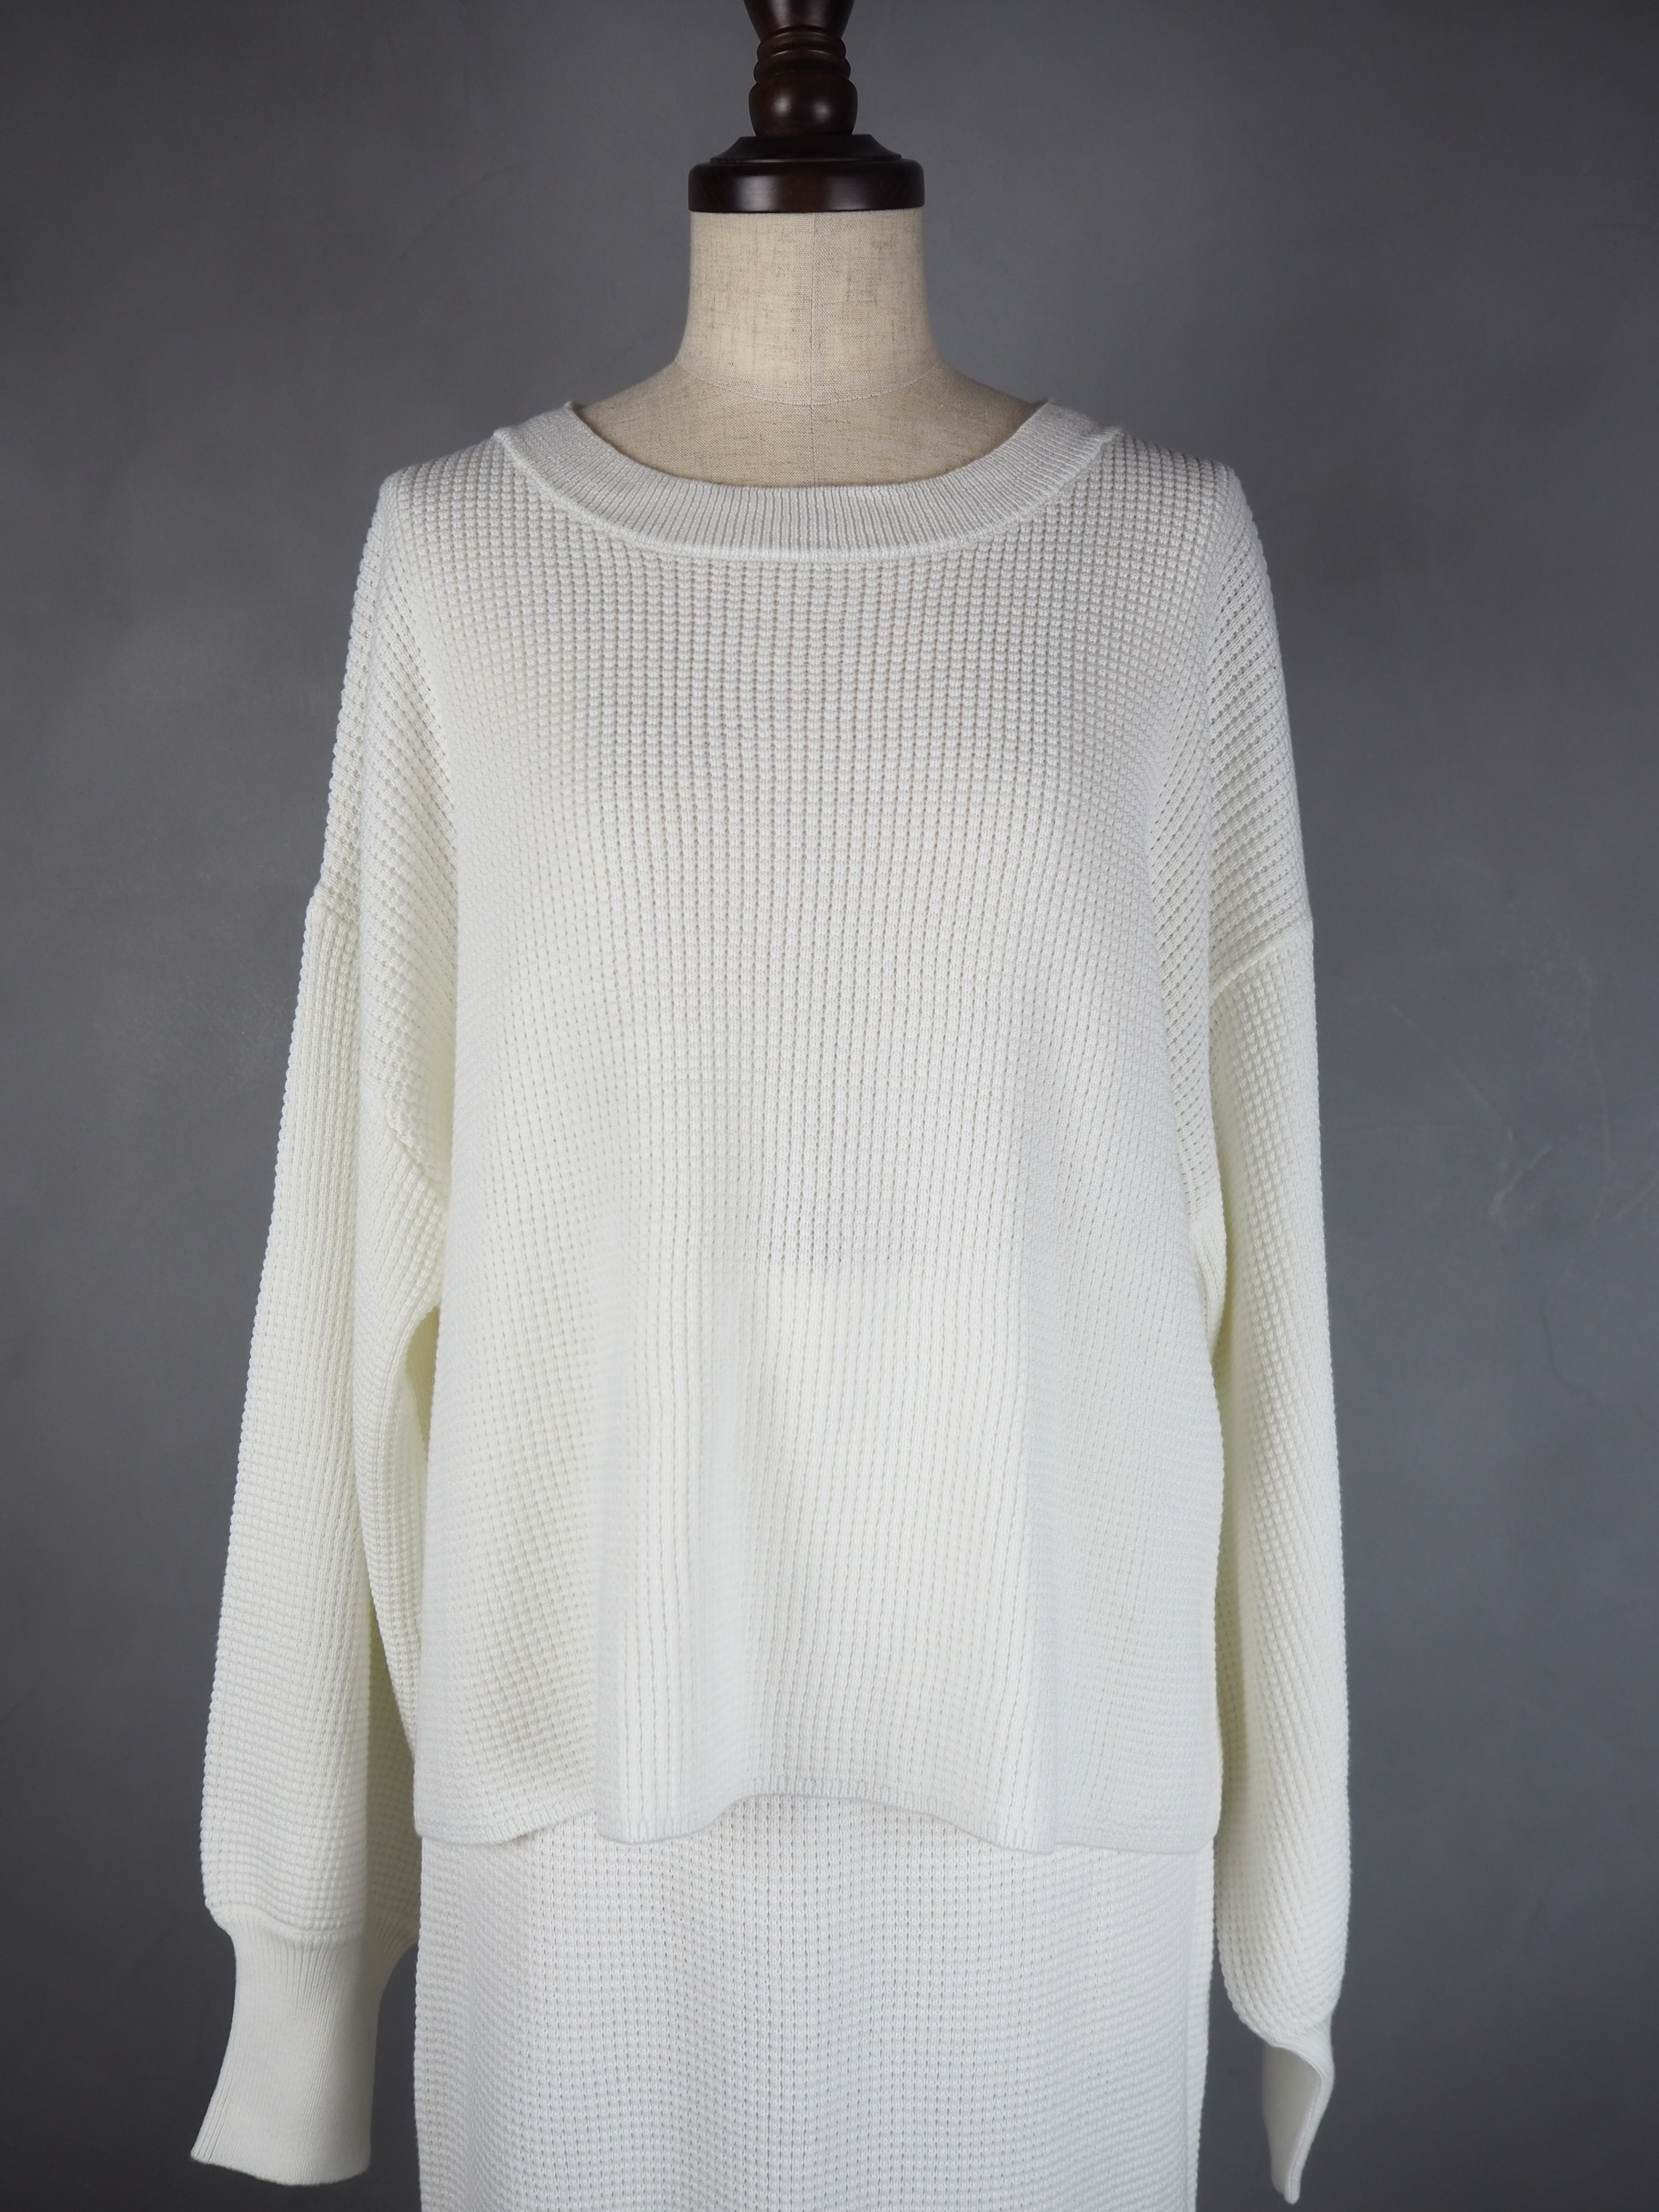 【ENLIGHTENMENT】KNIT WAFFLE PULLOVER